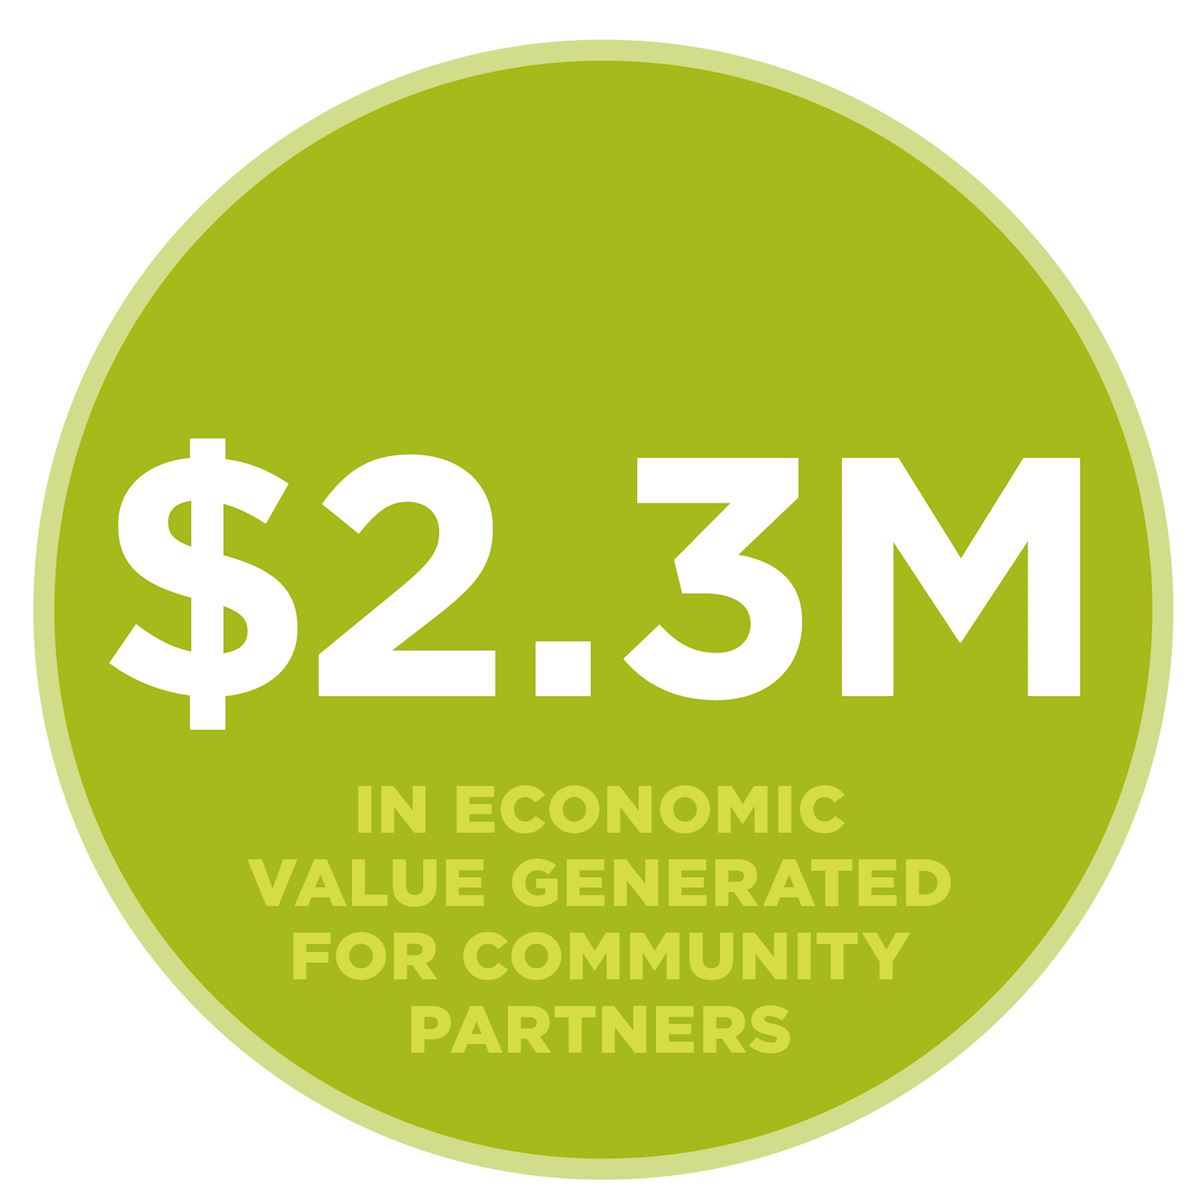 $2.3 million in economic value generated for community partners